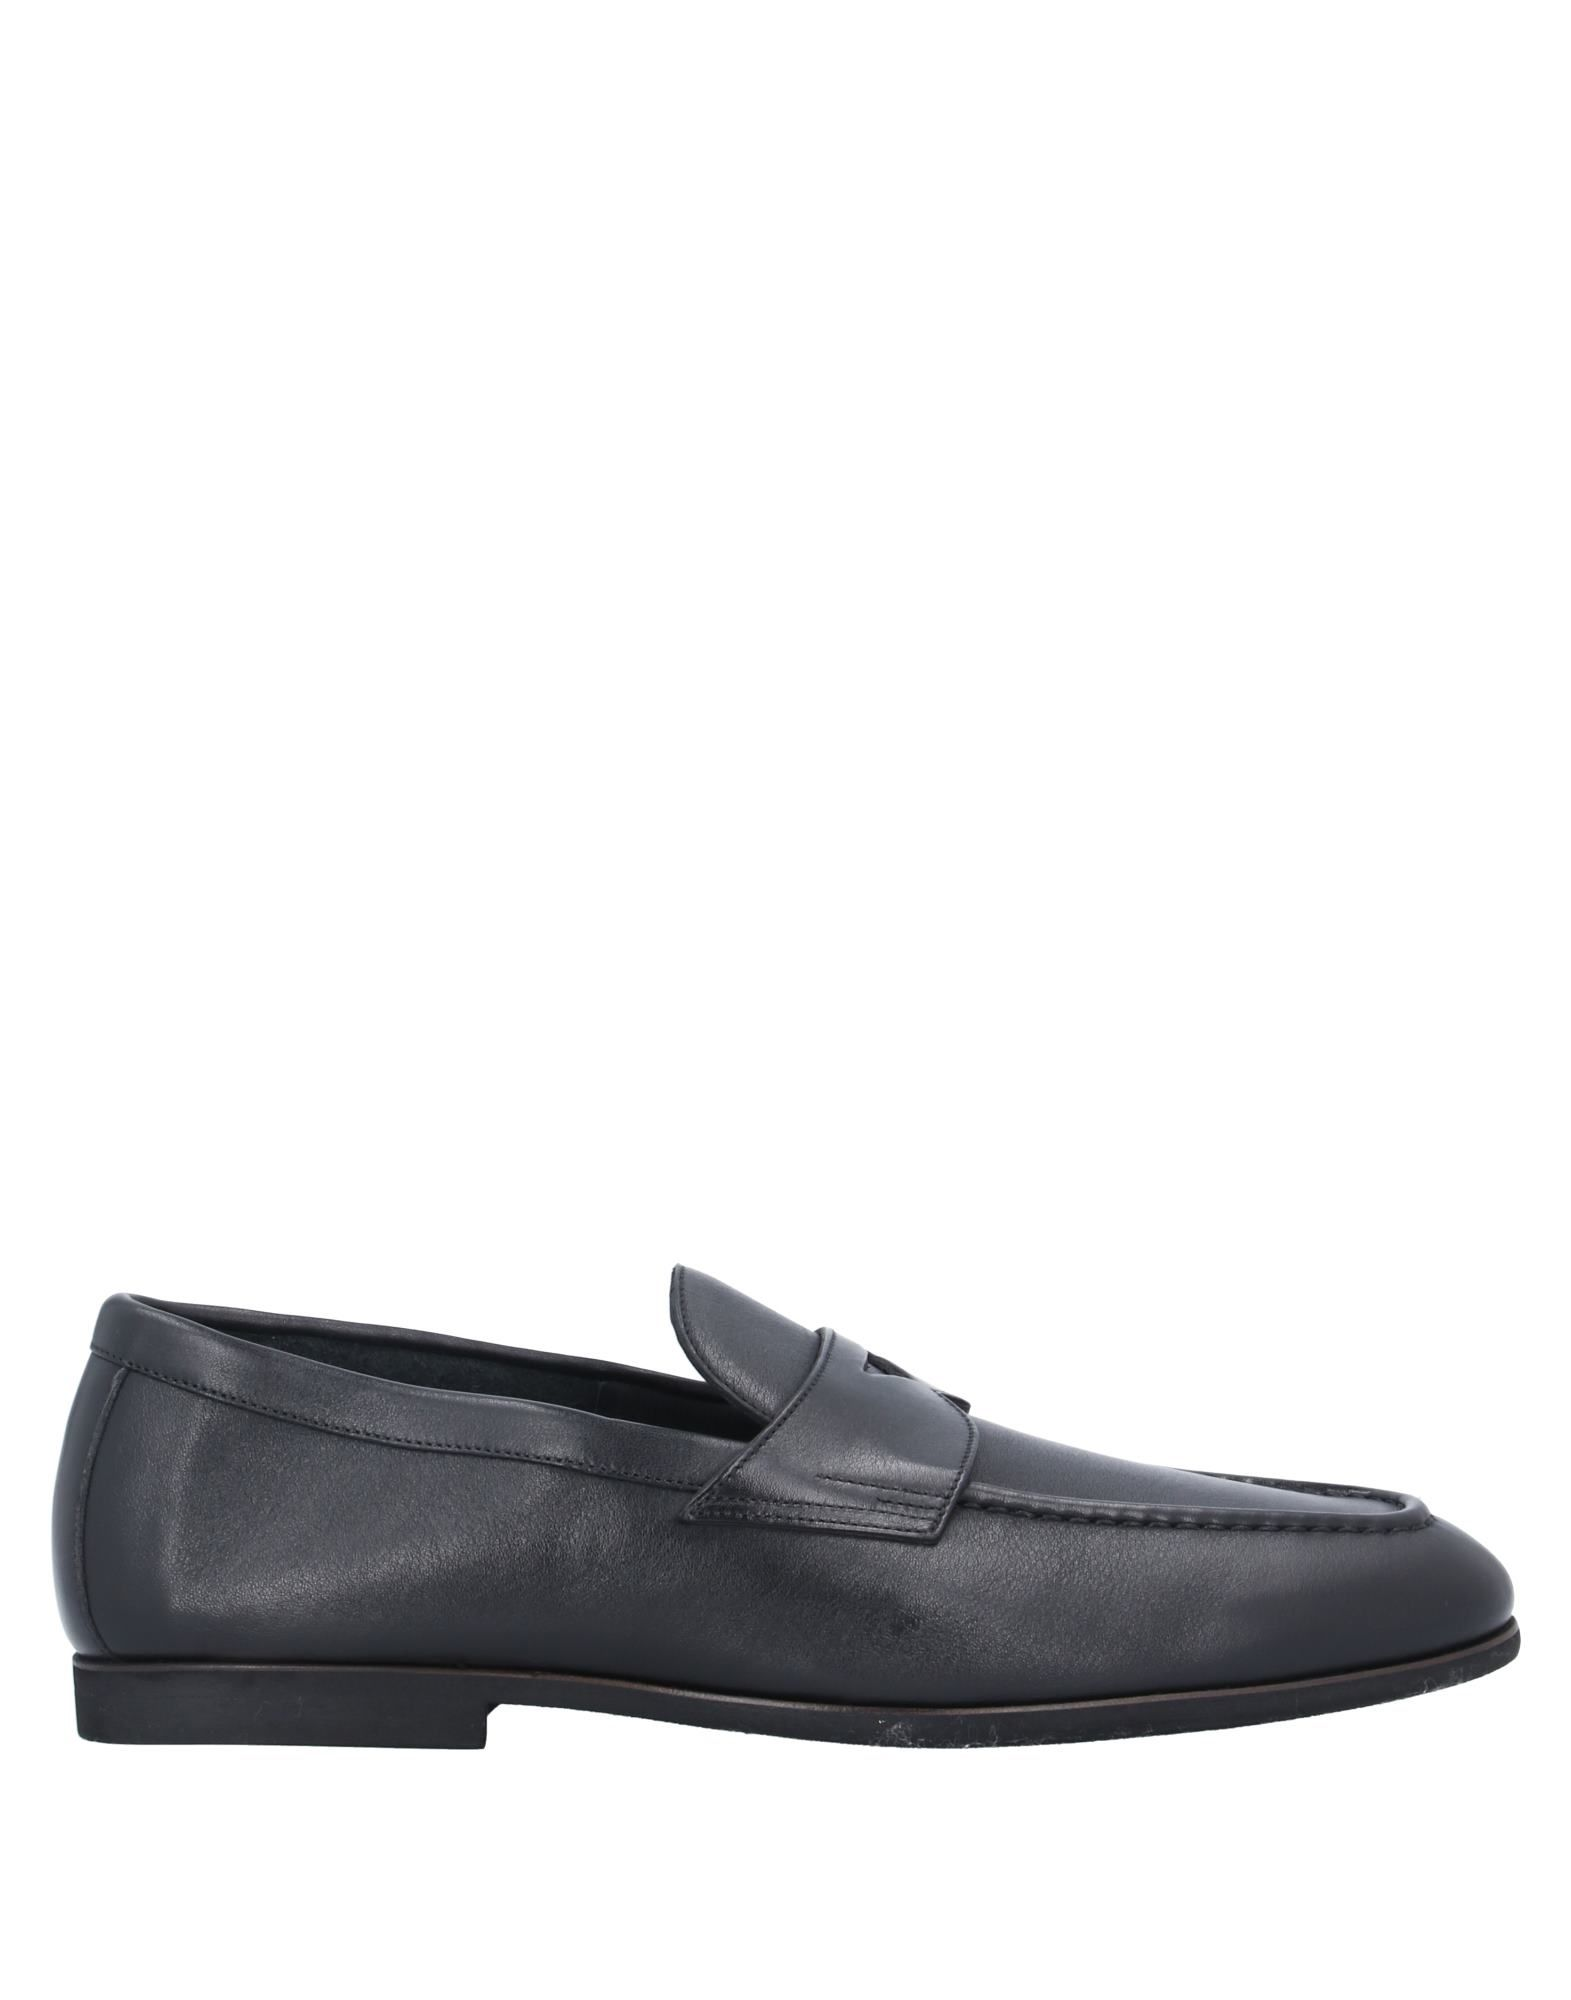 SANTONI Loafers. no appliqués, solid color, round toeline, flat, leather lining, rubber sole, contains non-textile parts of animal origin, large sized. Soft Leather